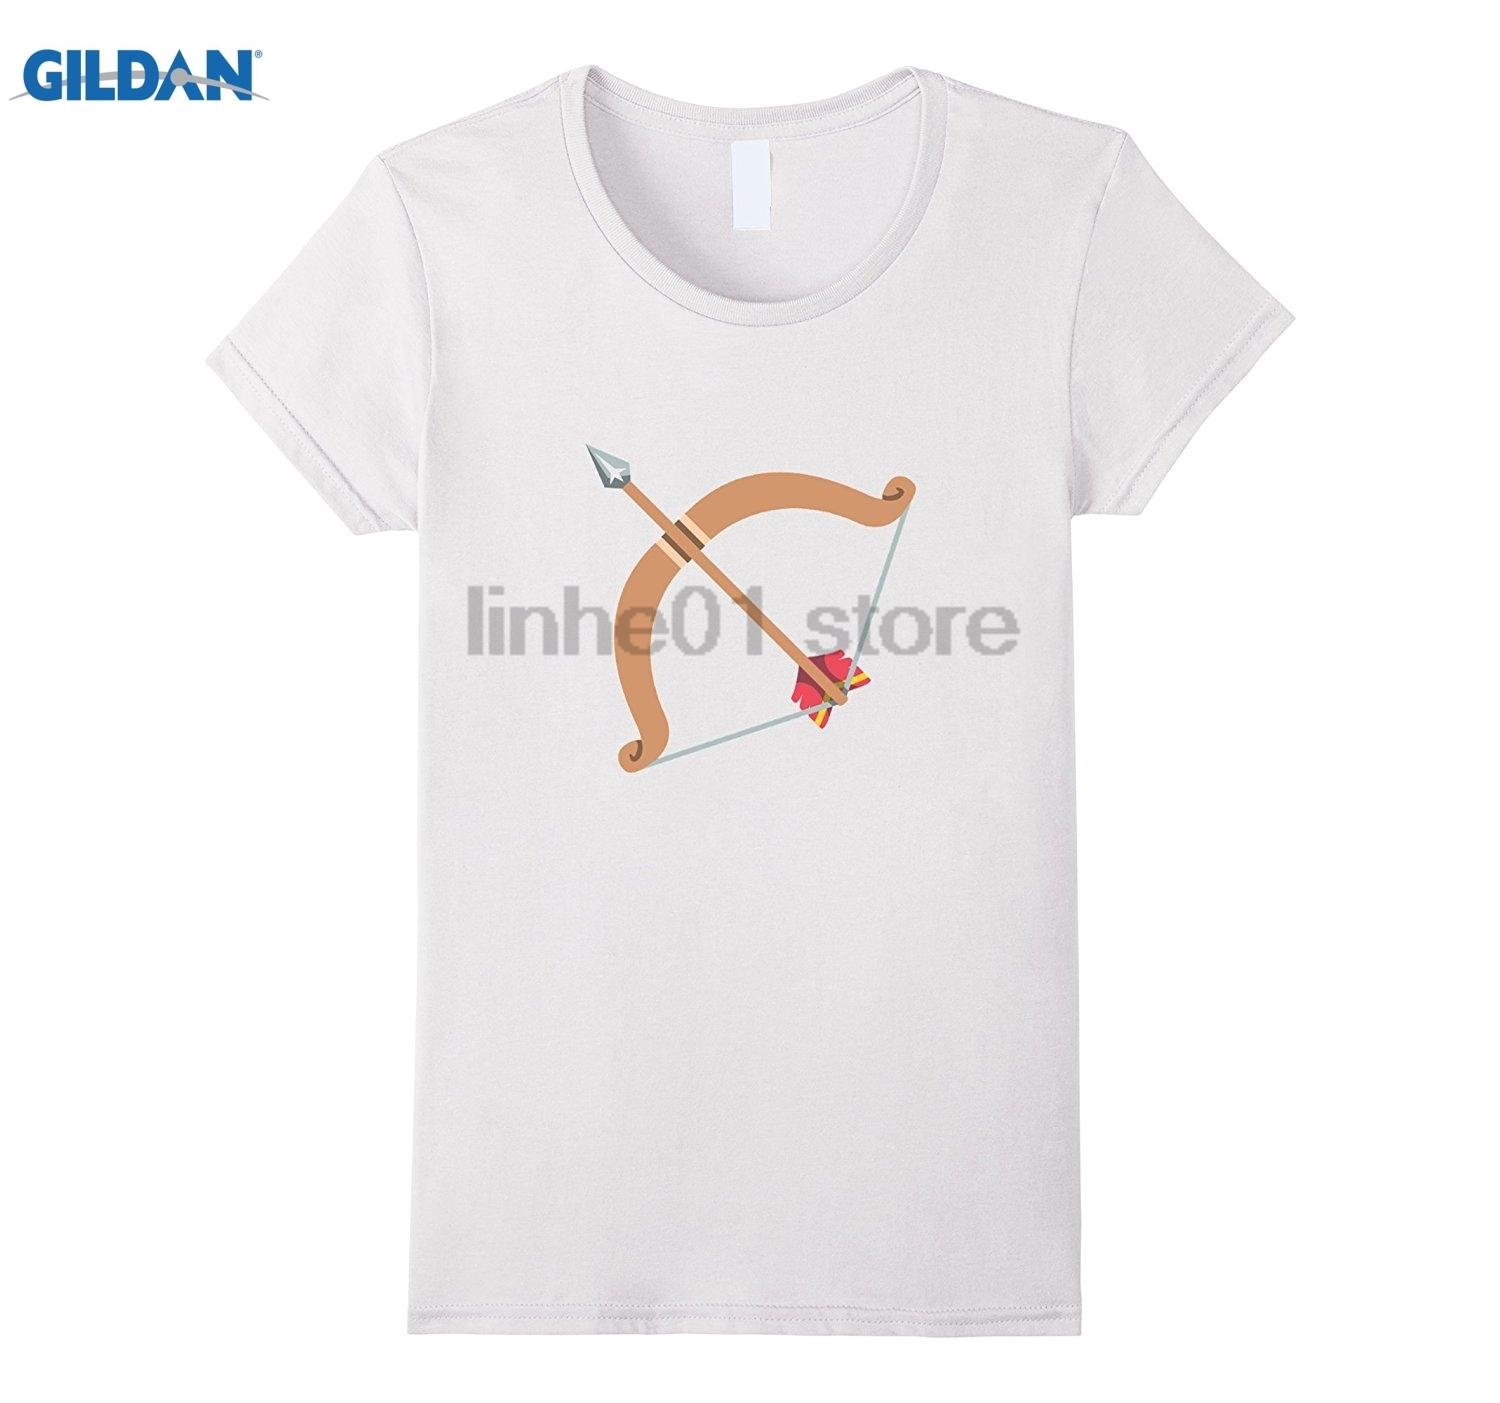 GILDAN Bow and Arrow Emoji T-Shirt Crossbow Archery Target Rifelry Dress female T-shirt